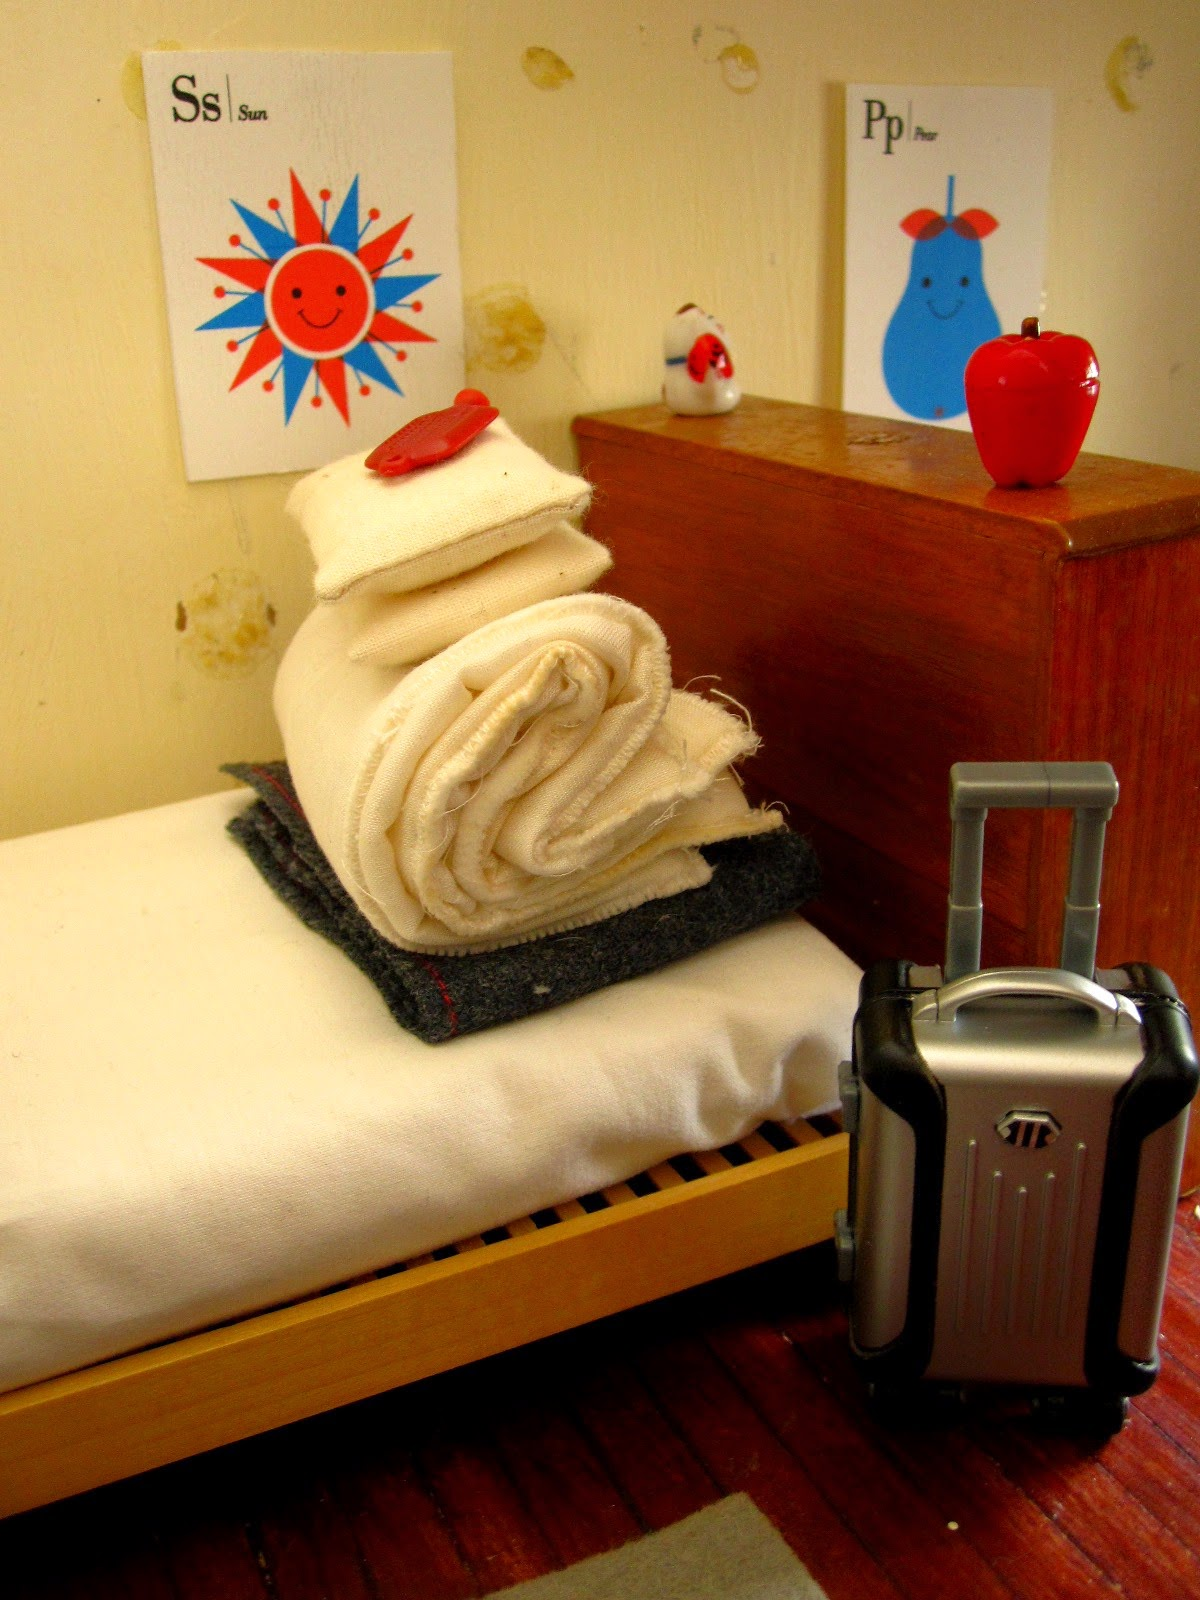 Miniature bed, stripped, with bedding folded into a pile. A rolling suitcase stands on the floor at the end of the bed.